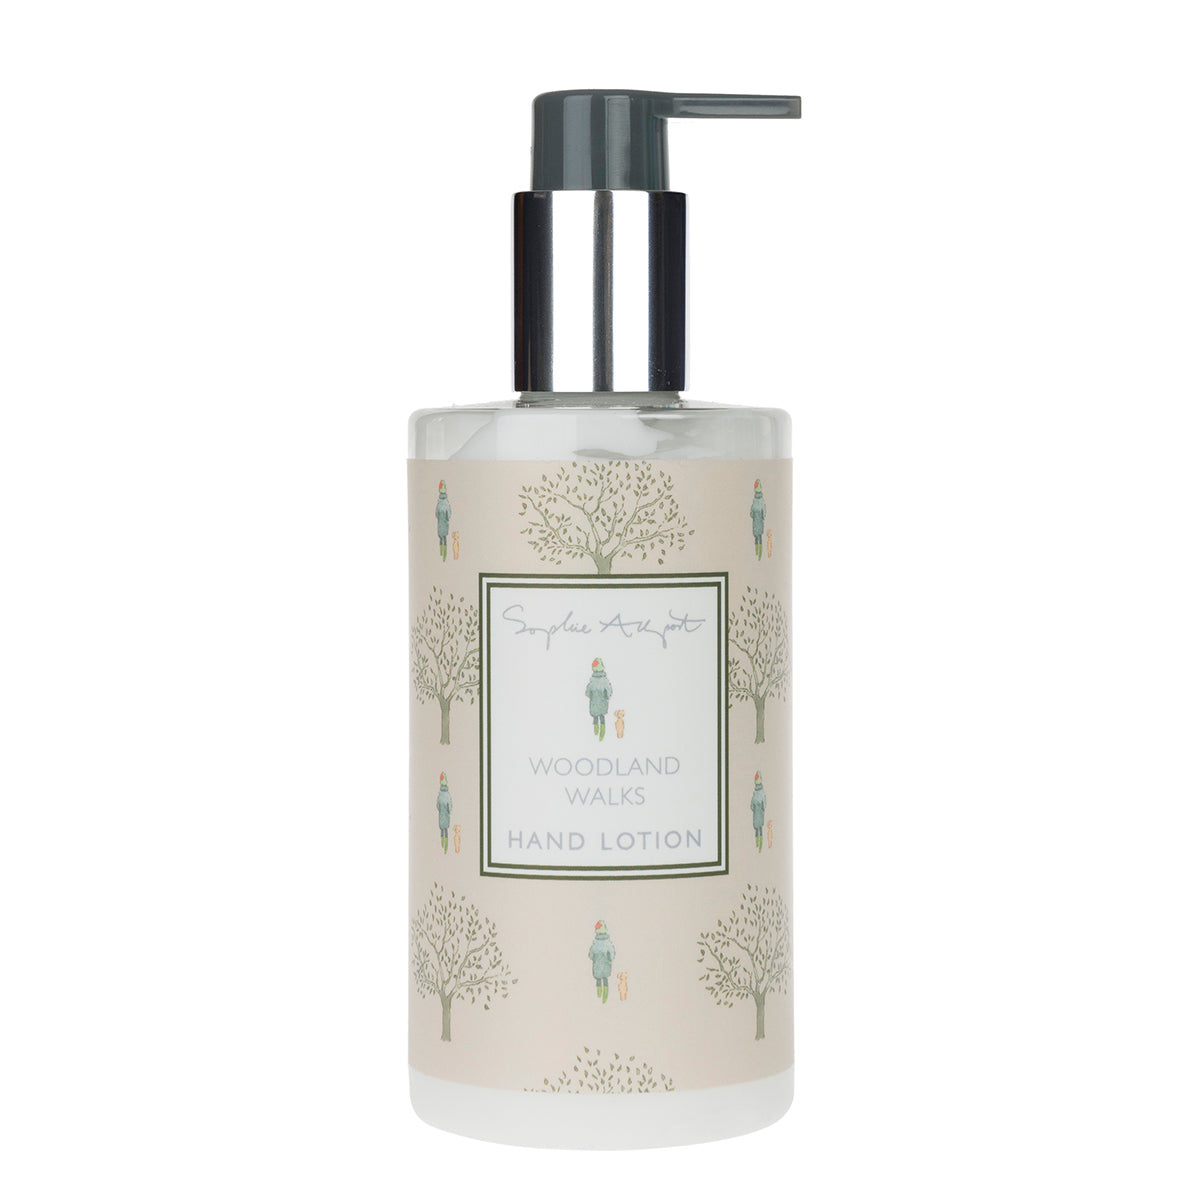 Woodland Walks Hand Lotion